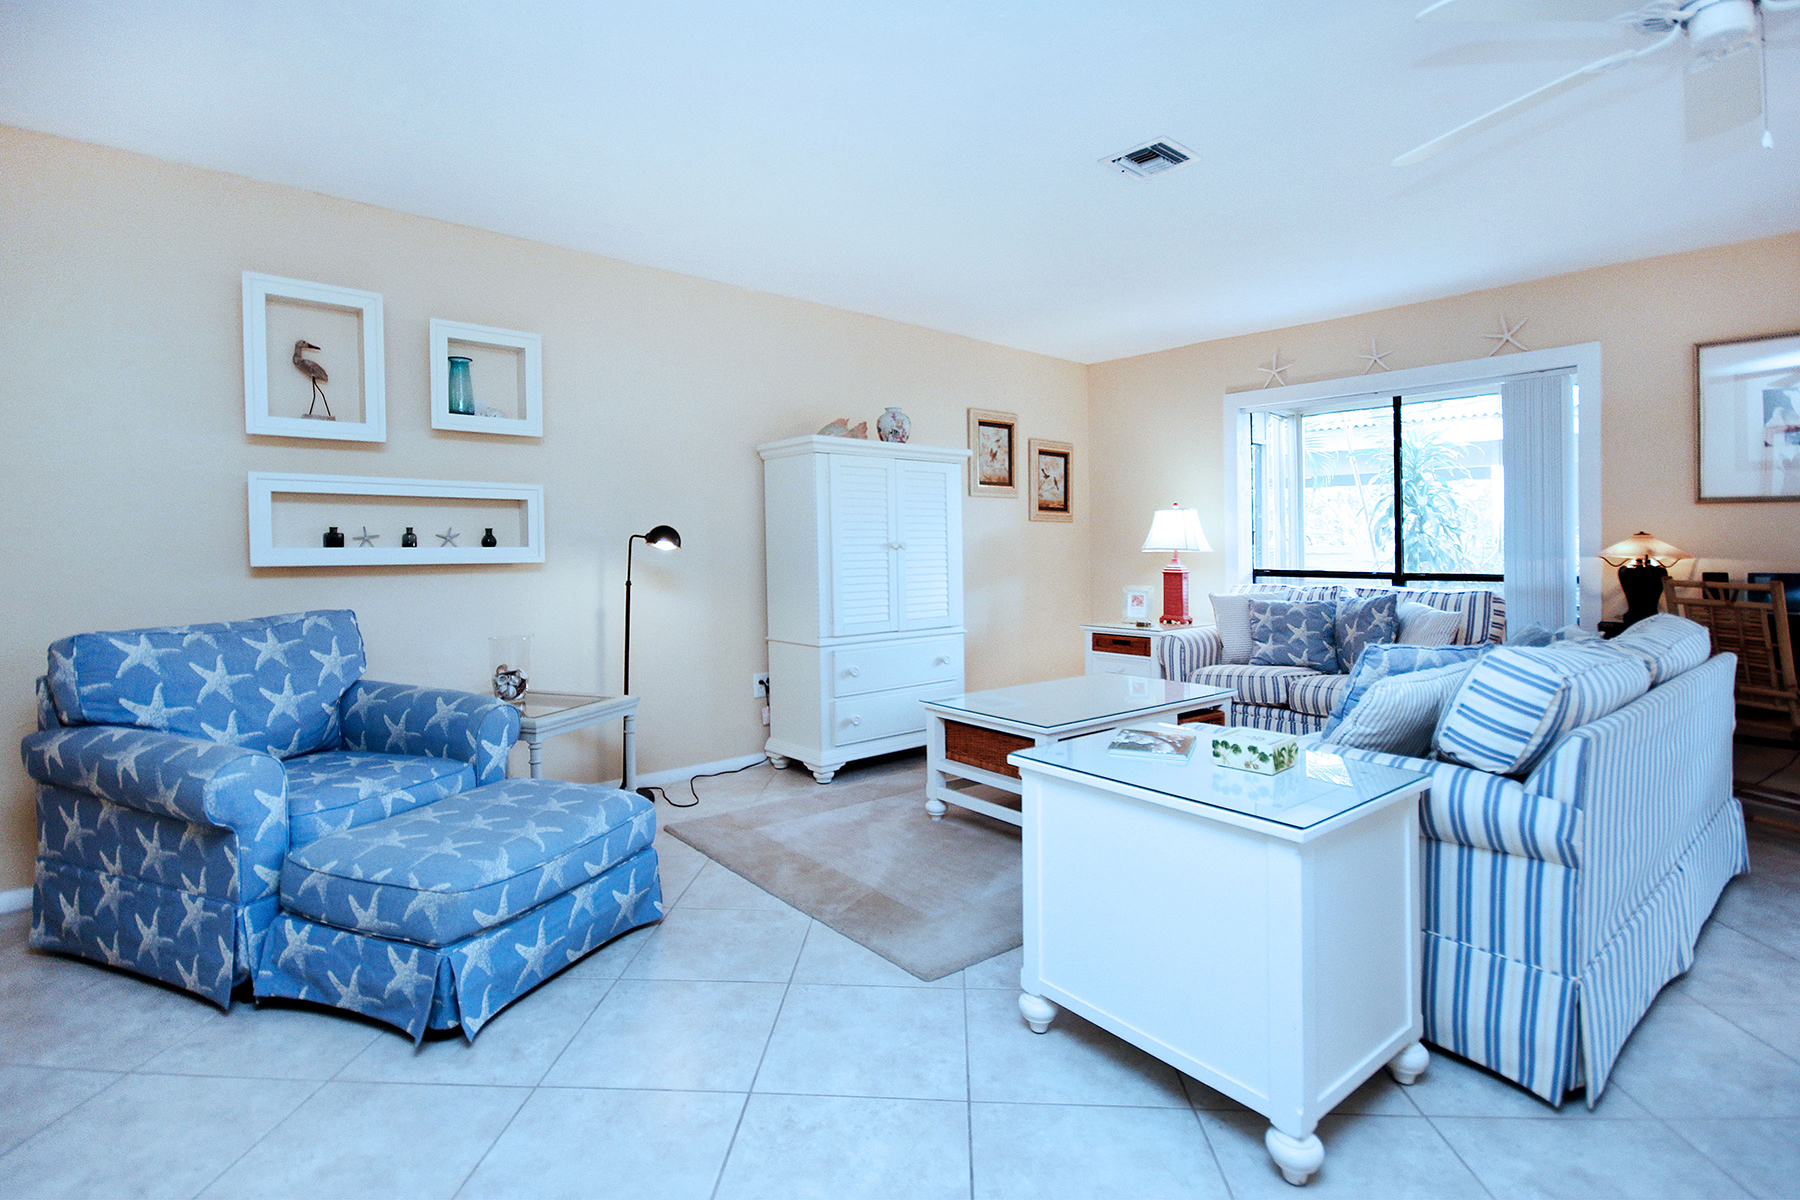 Condominium for Sale at SANIBEL 5117 Sea Bell Rd F106, Sanibel, Florida 33957 United States